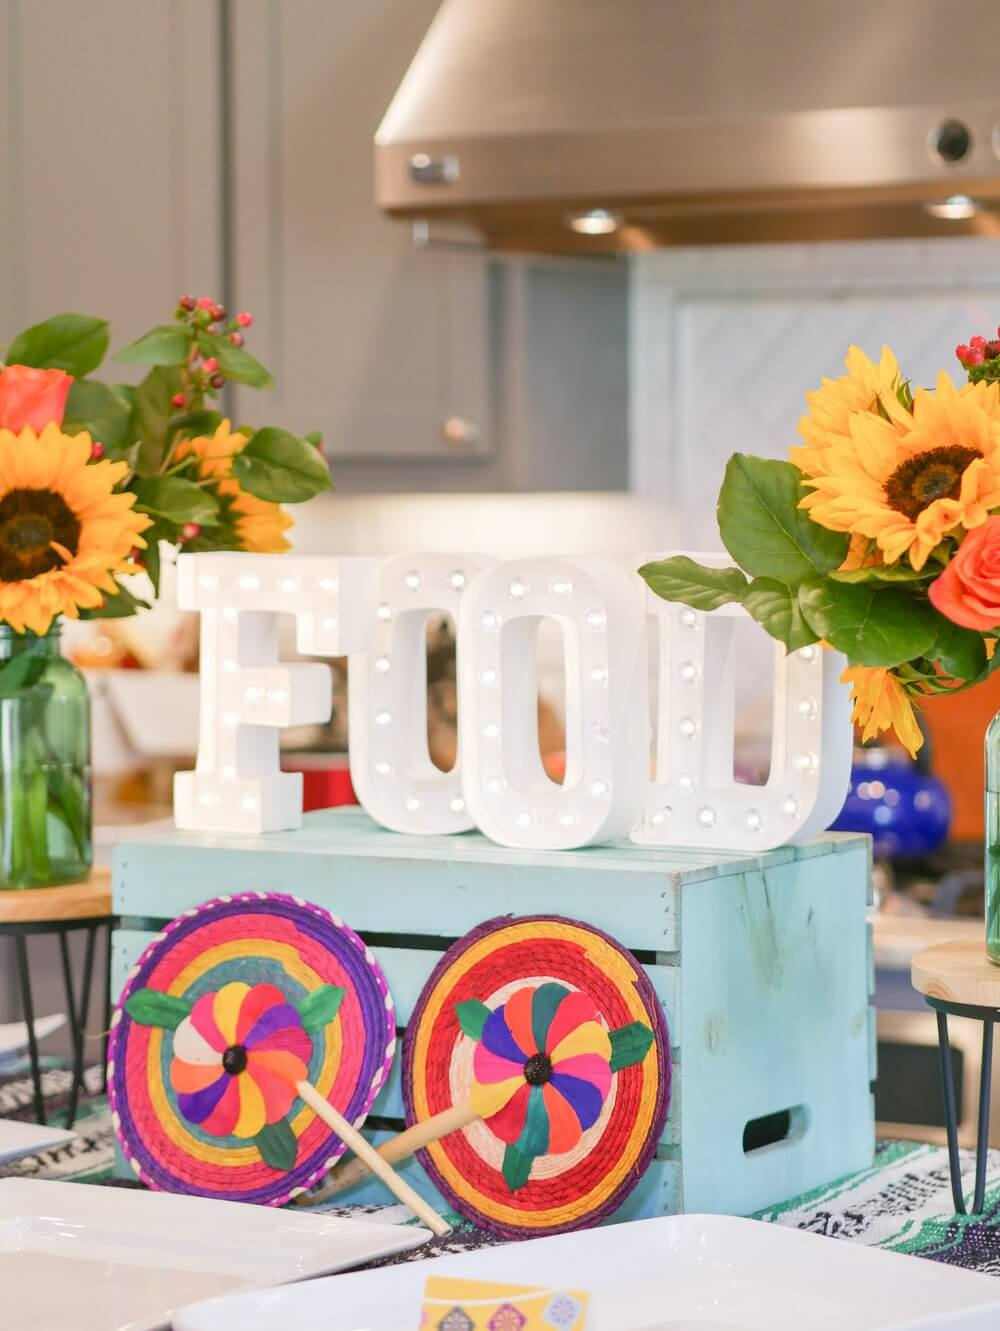 Fiesta food table with FOOD marquee sign and Mexican decor.